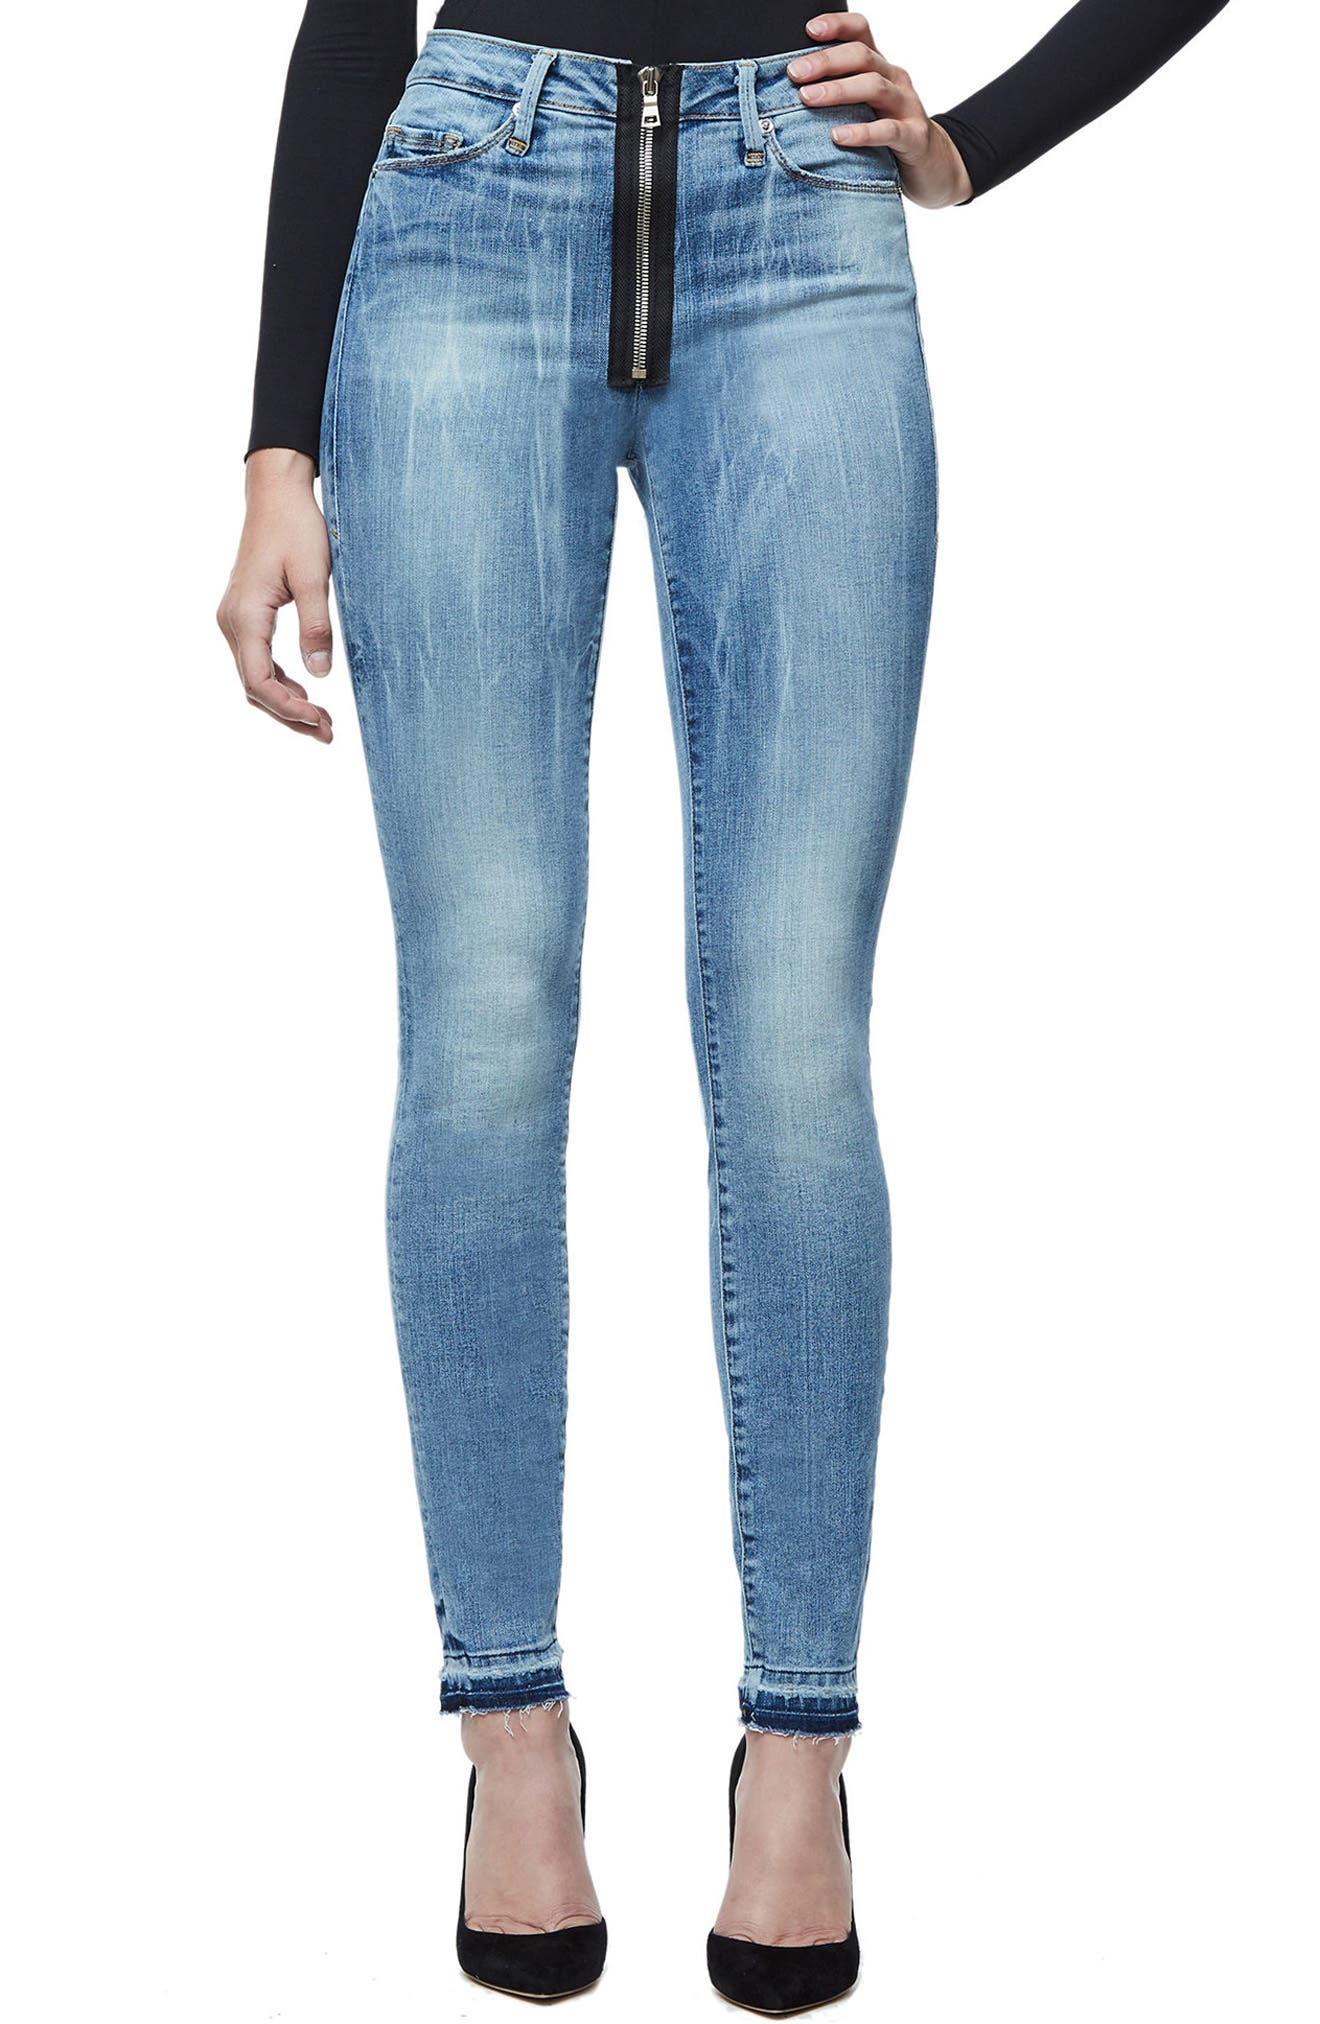 Main Image - Good American Good Waist Exposed Zip Skinny Jeans (Blue 075) (Extended Sizes)